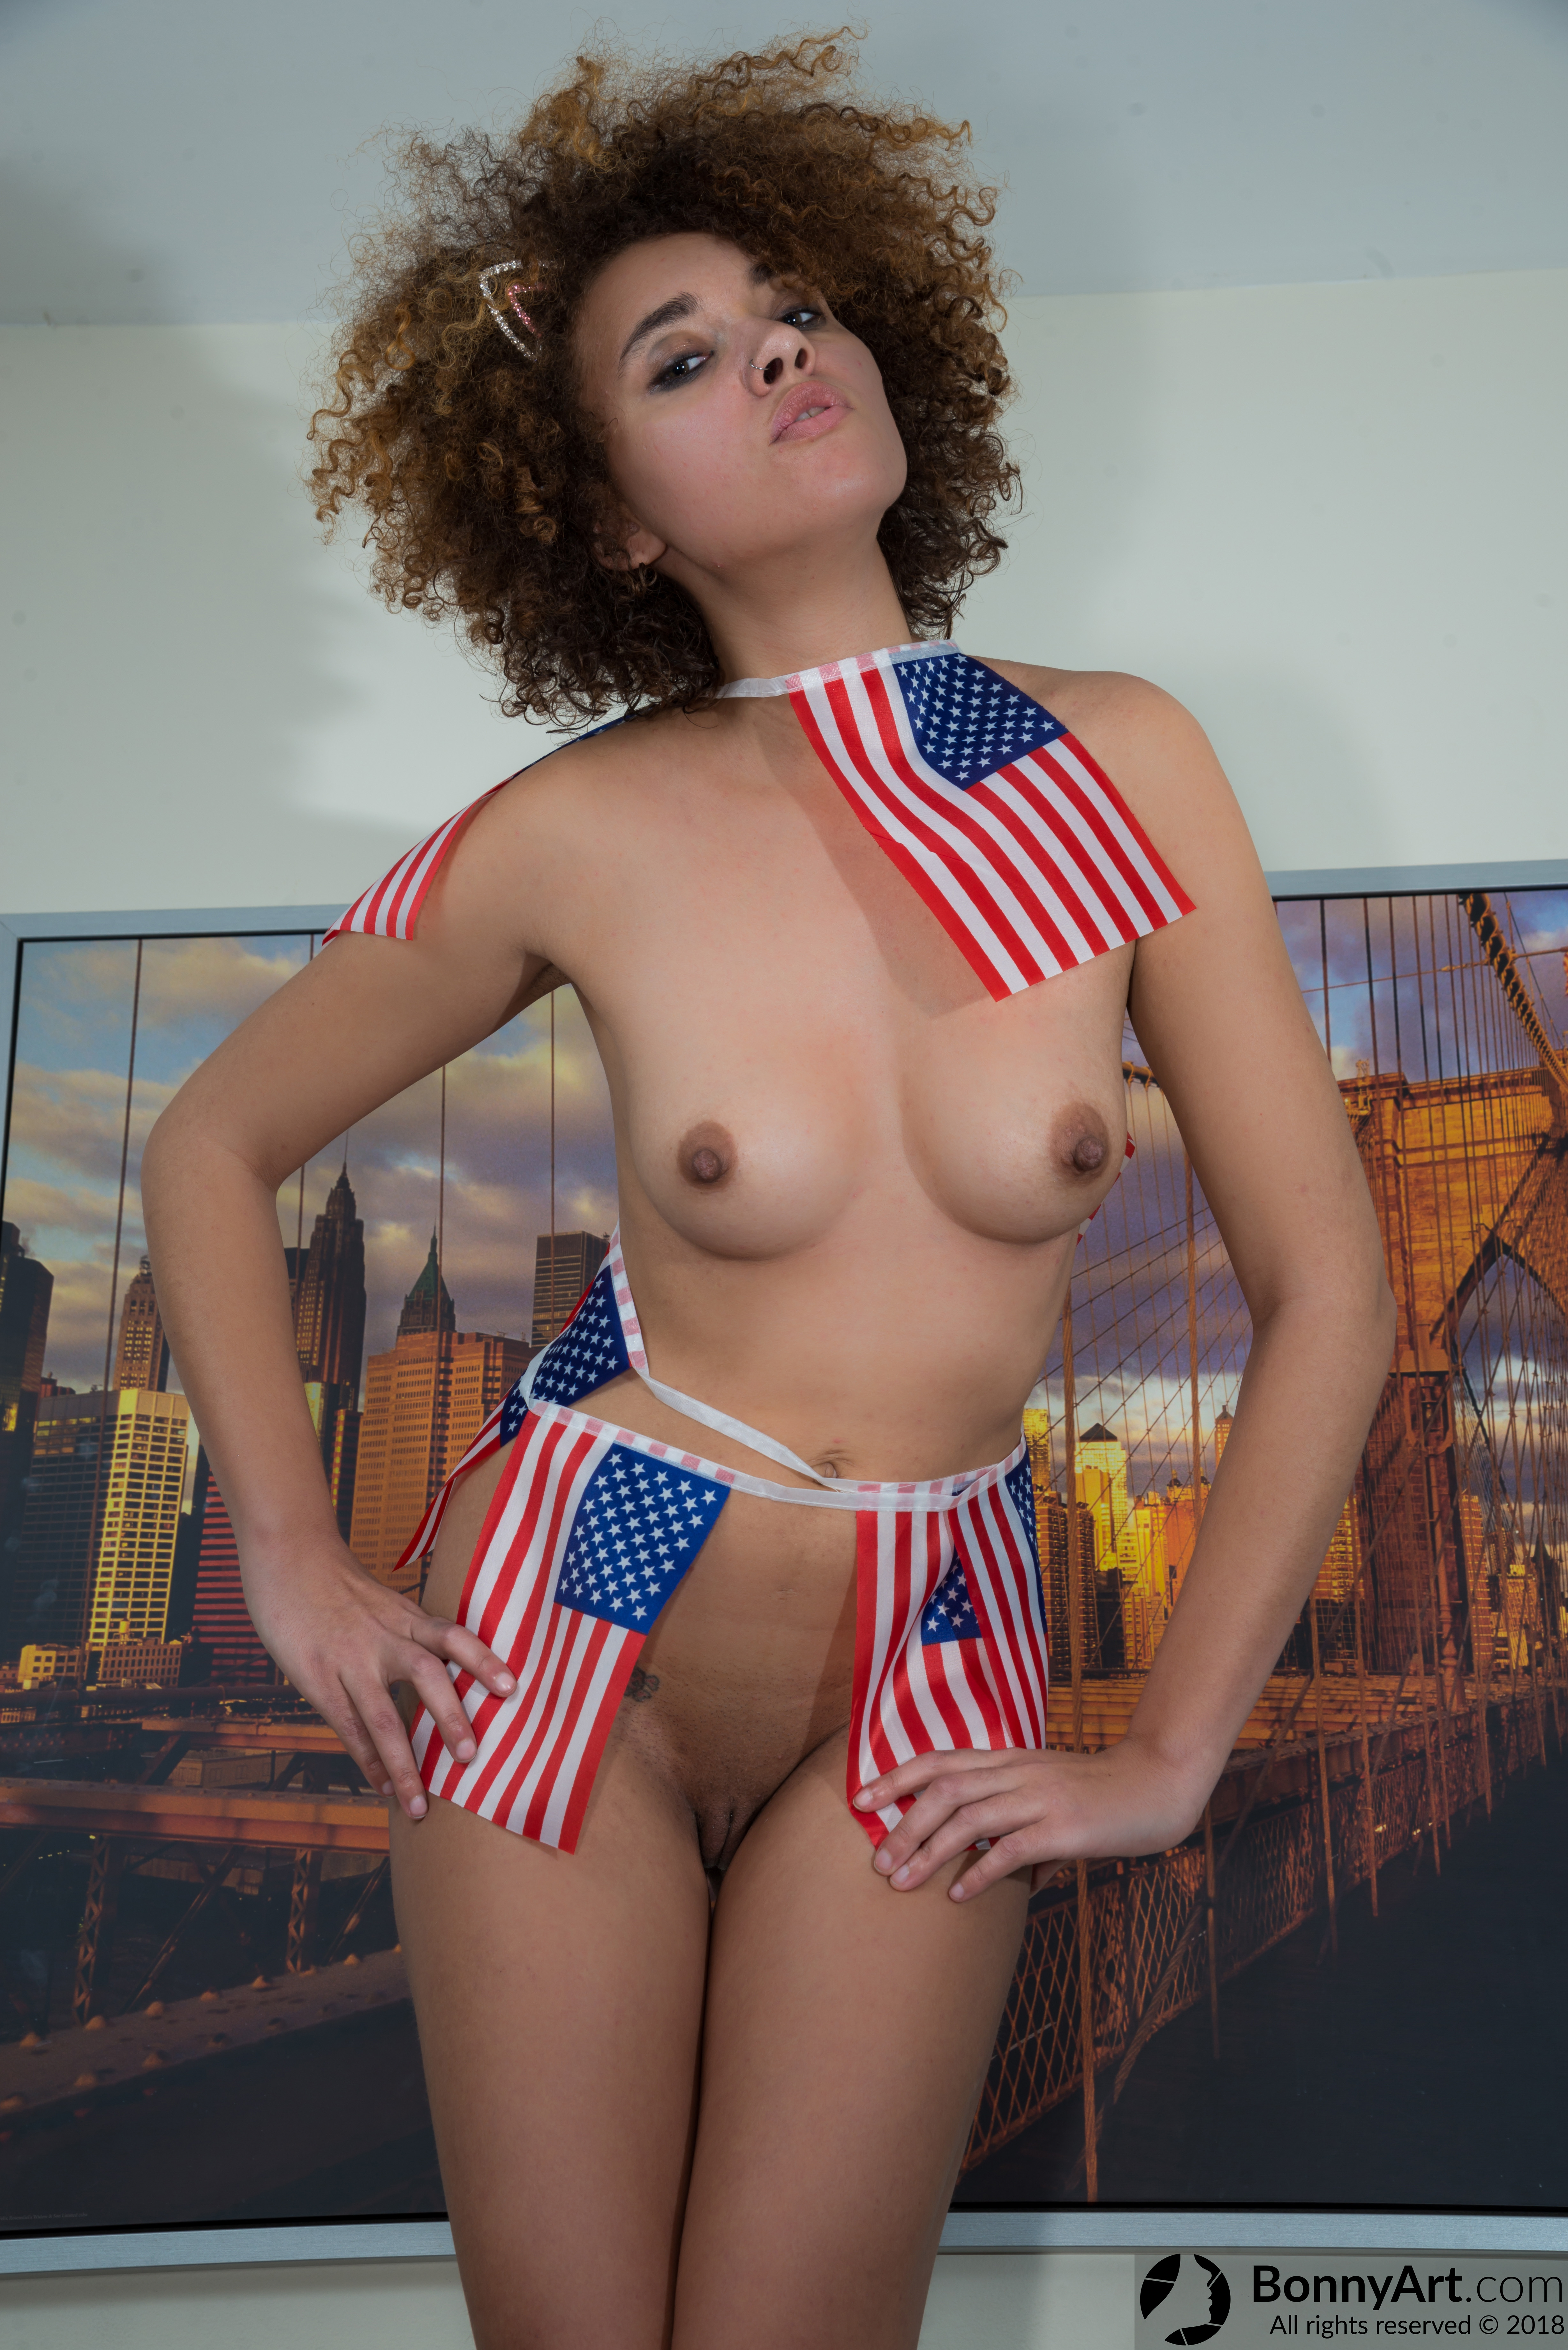 Naked American Model Wearing USA Flags HD